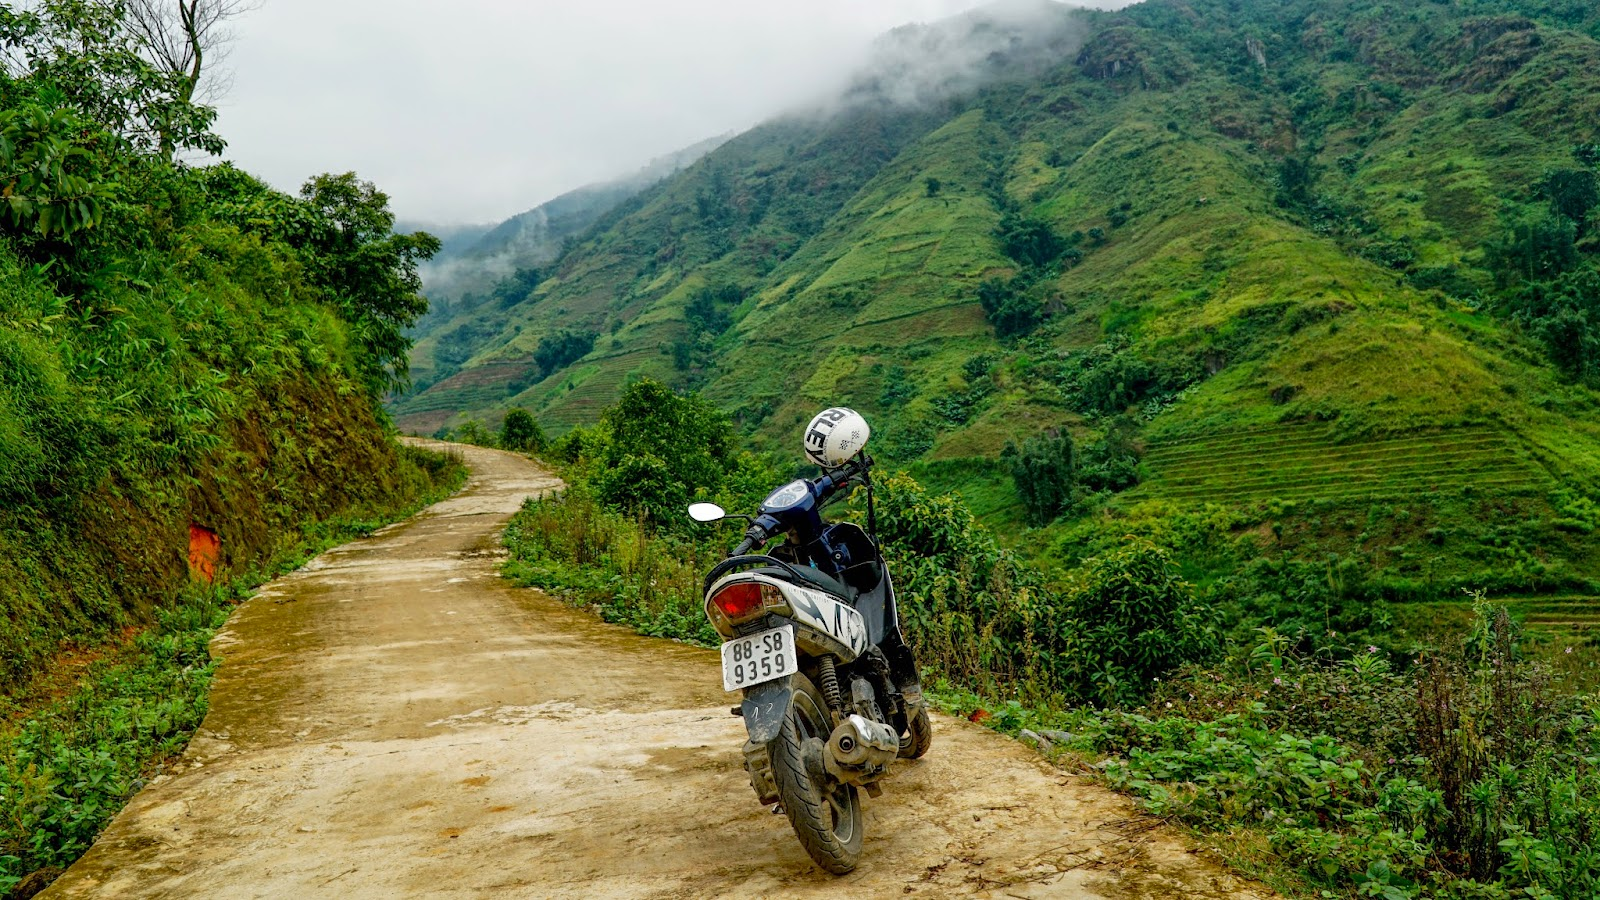 Exploring this tiny road along the mountainside near Trung Chai